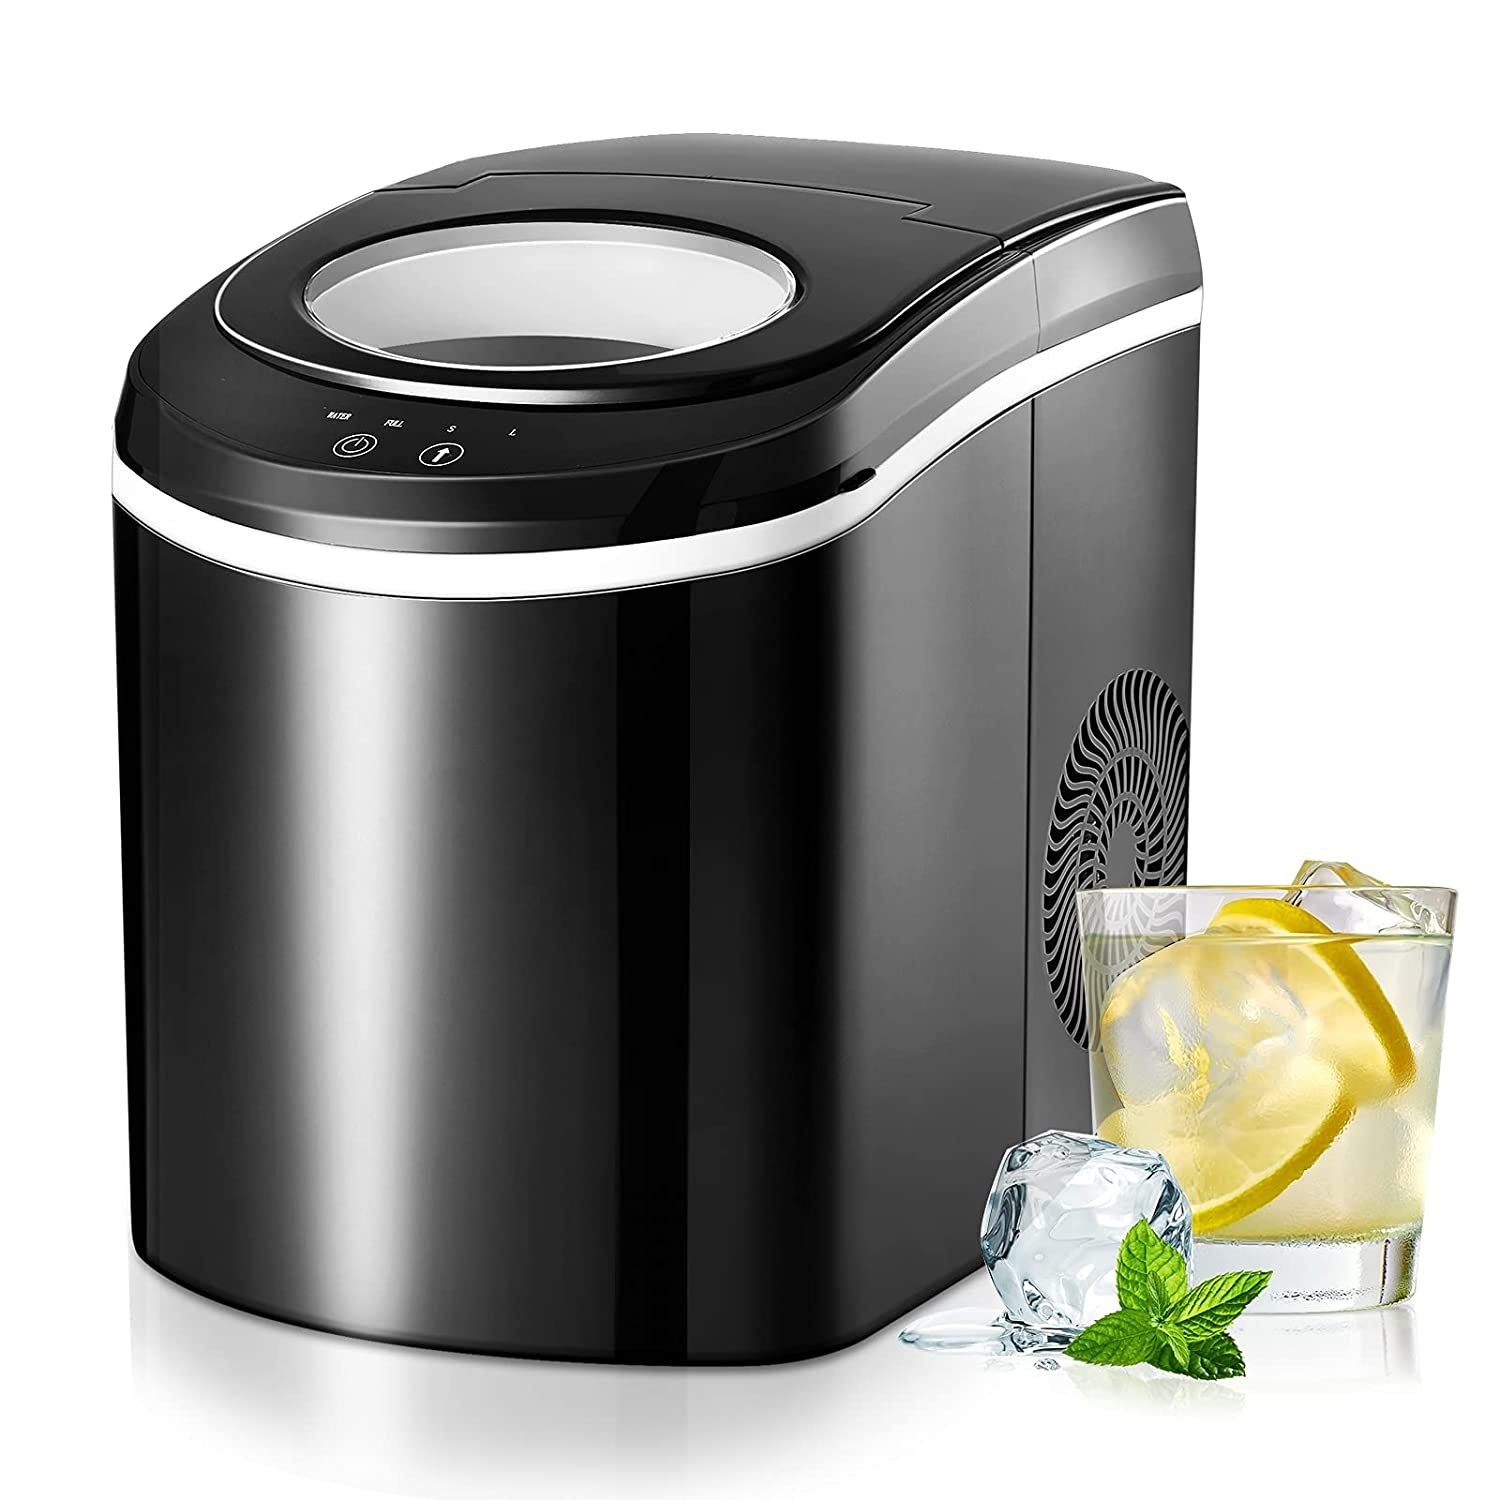 TRUSTECH Ice Maker Machine for Countertop, Self-Cleaning Function